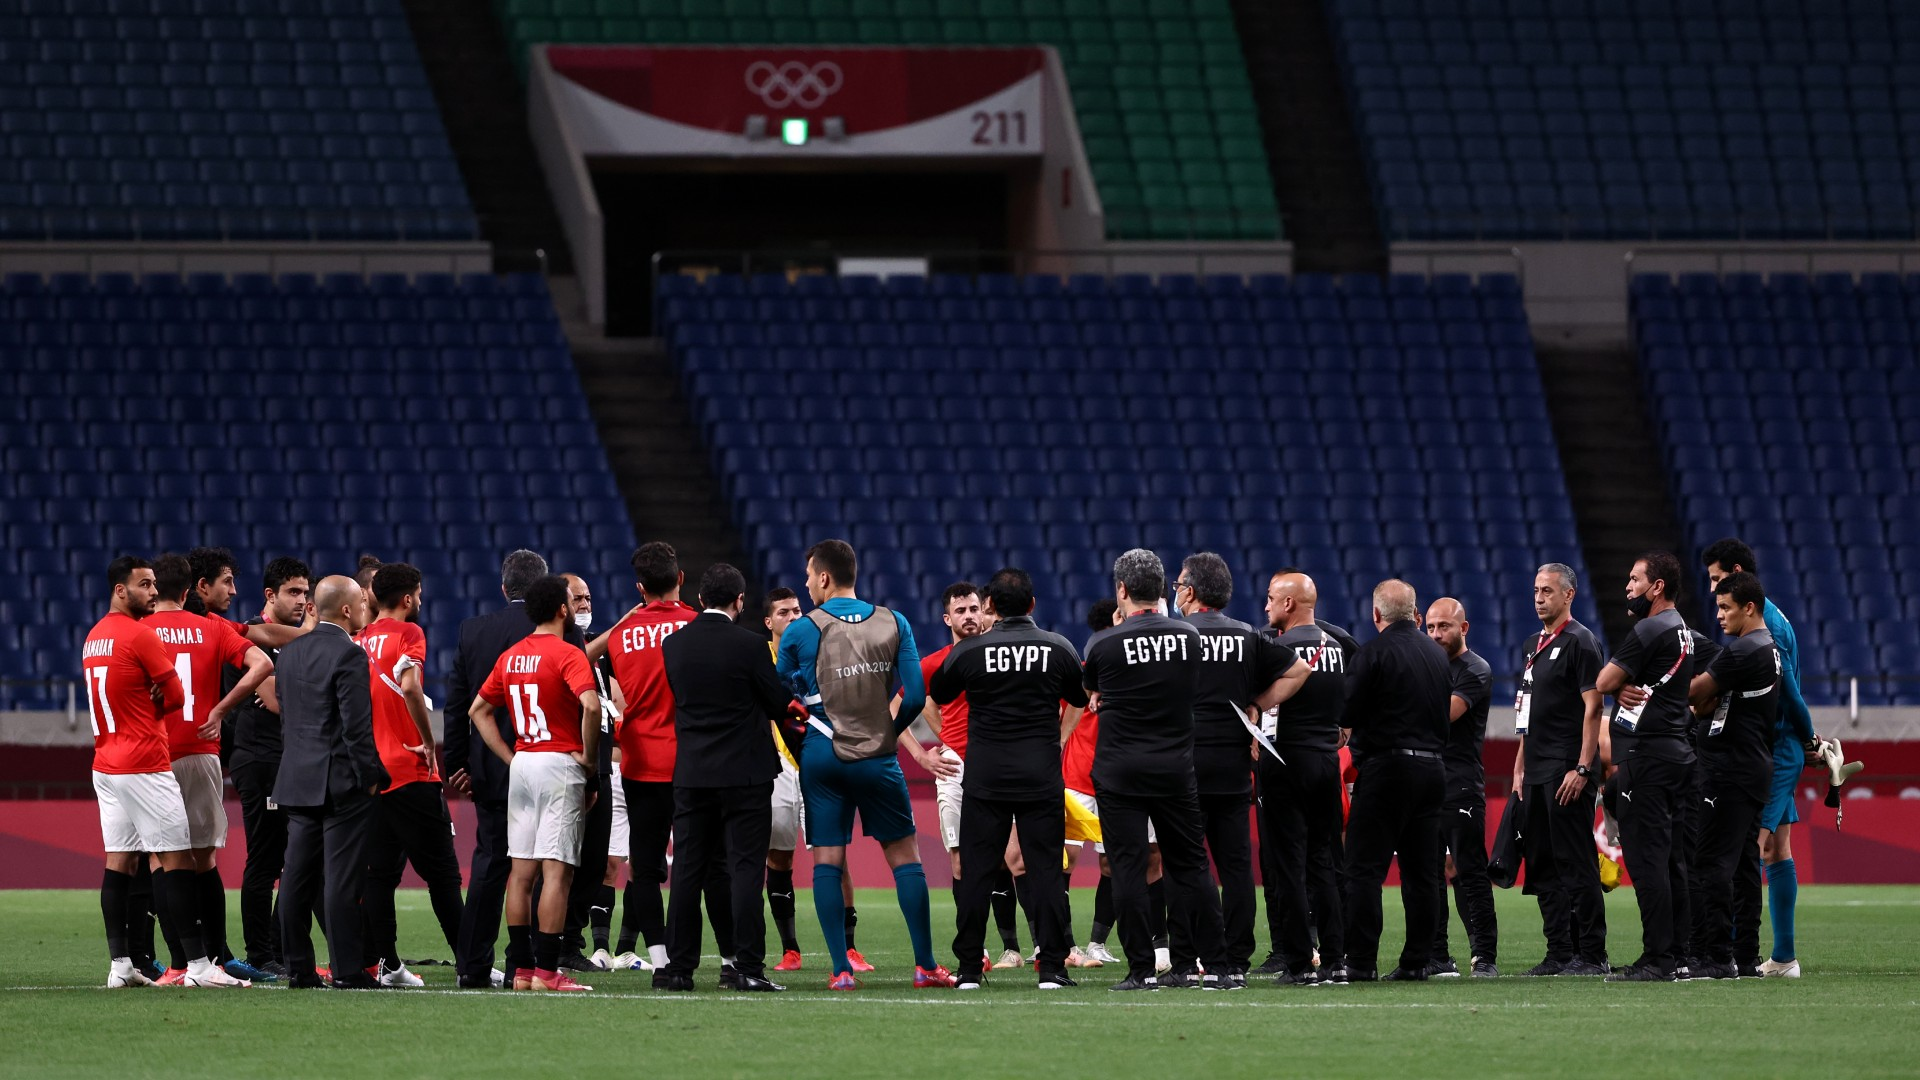 Olympics football: Egypt coach Gharib urges players not to worry after Brazil defeat